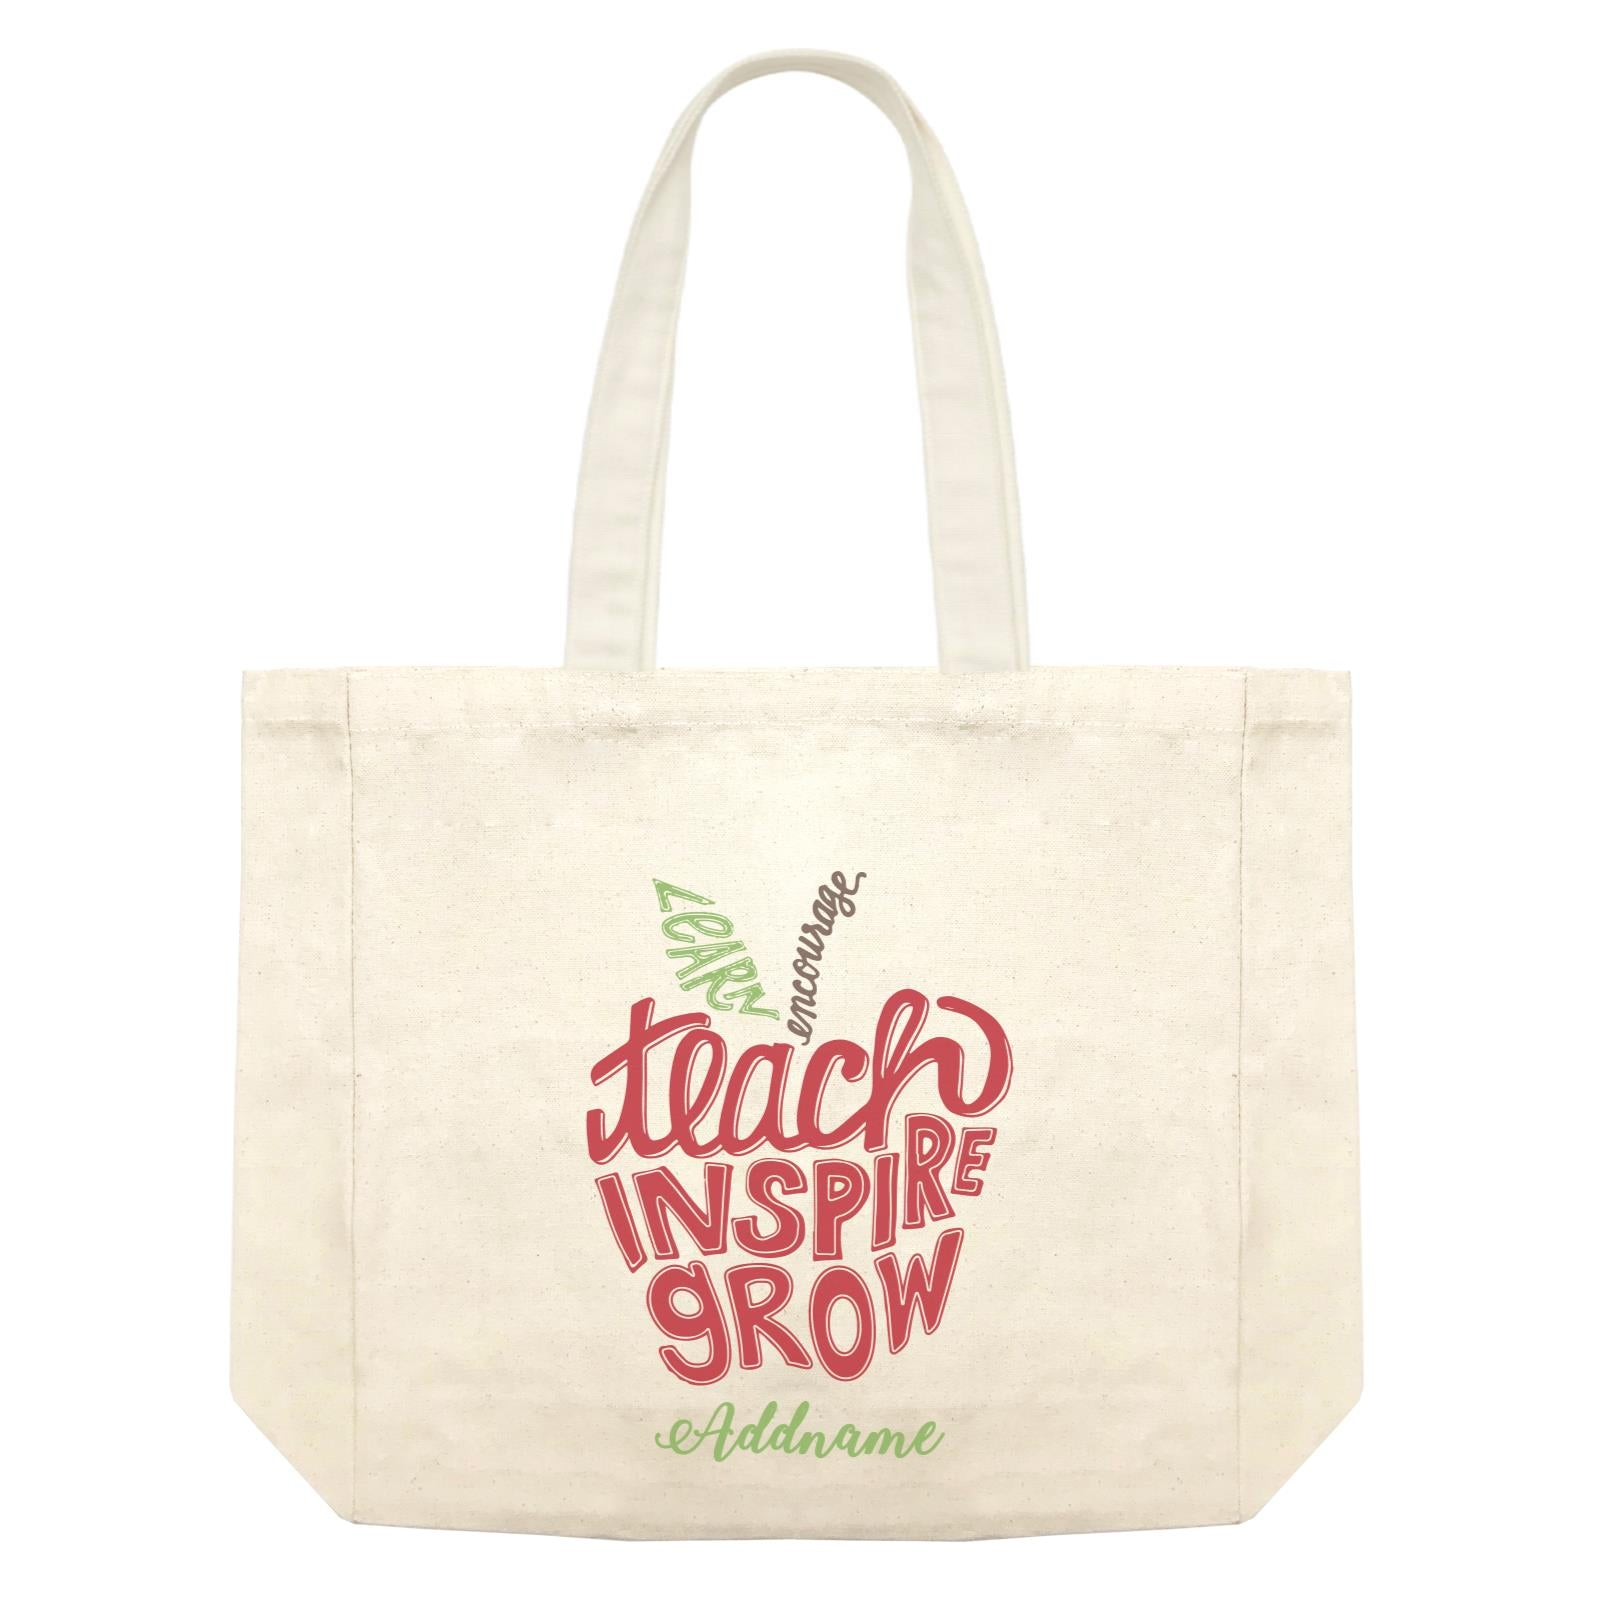 Teacher Apple Learn Encourage Teacher Inspire Grow Addname Shopping Bag